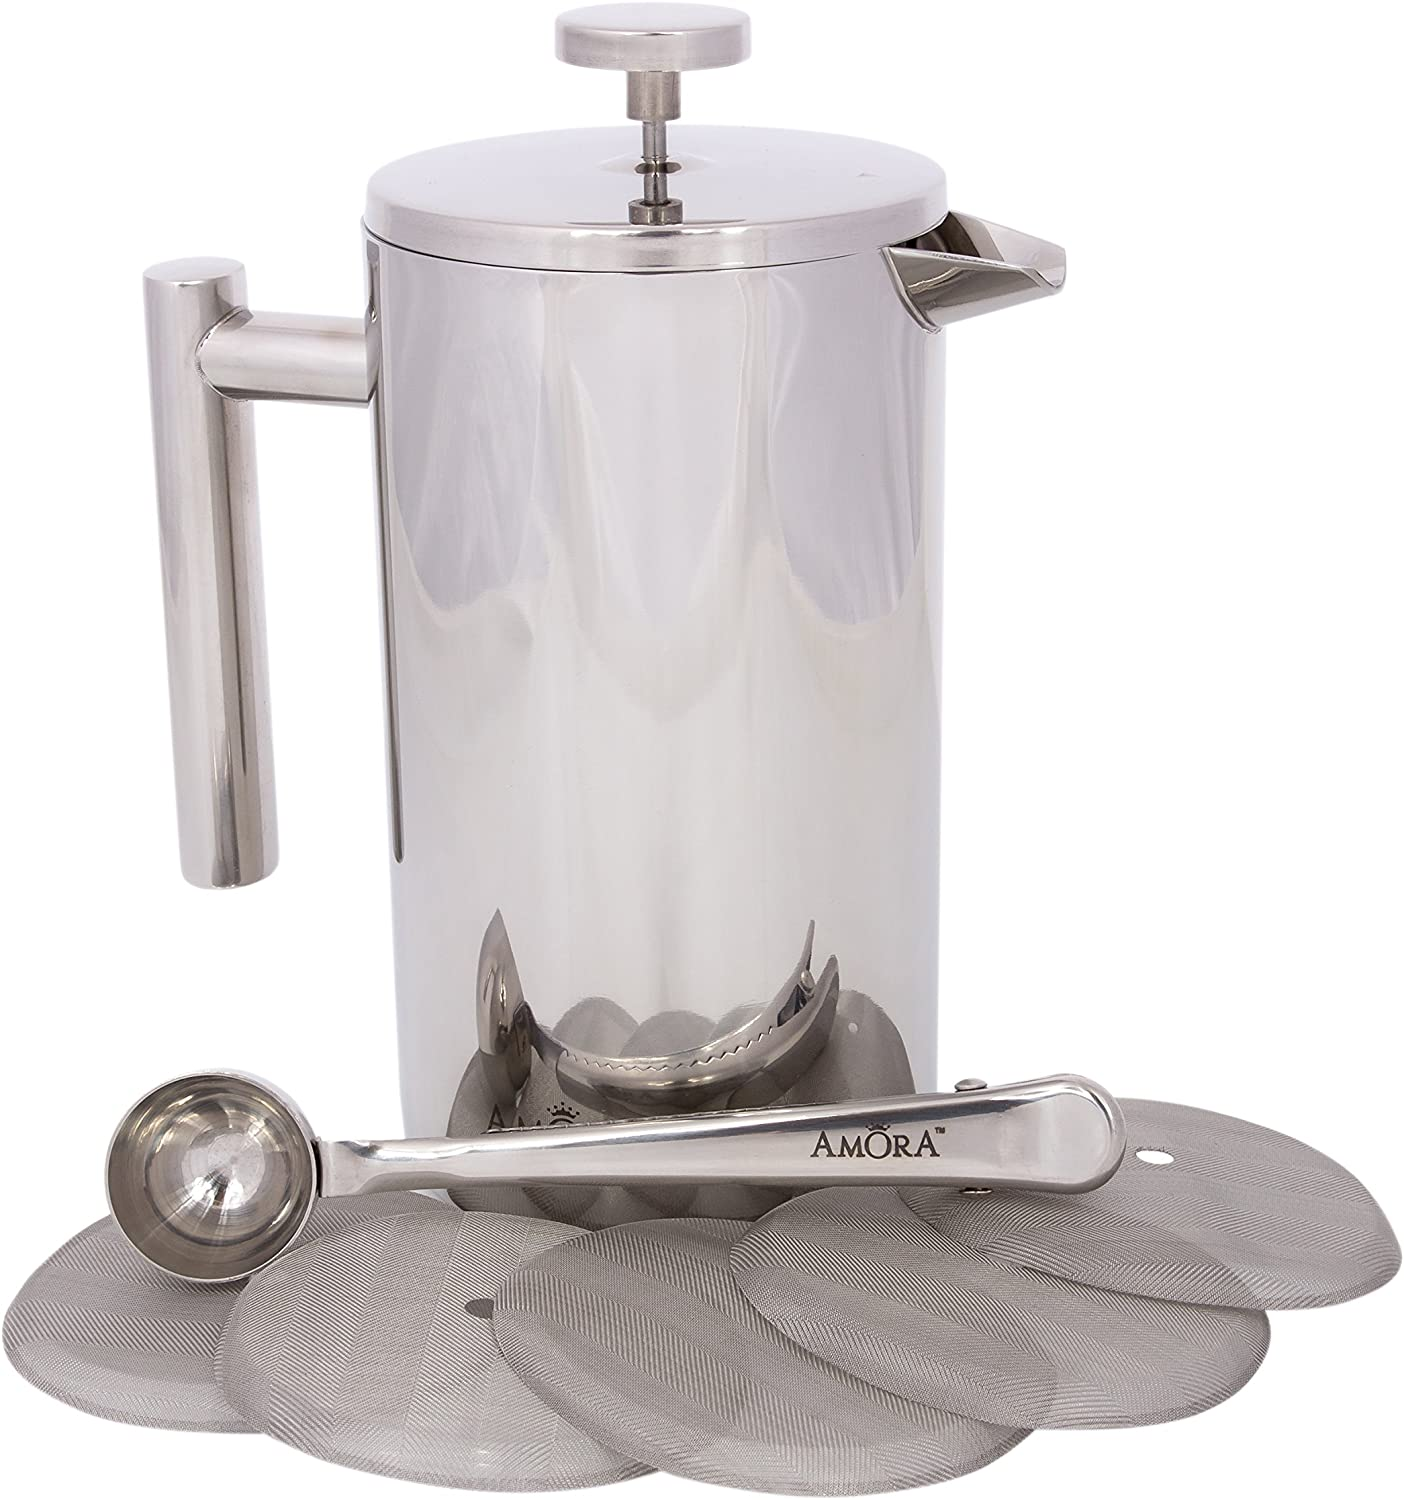 Amora 8-cup Stainless Steel French Press Coffee Maker – FREE Coffee Spoon 5 Mesh Filters